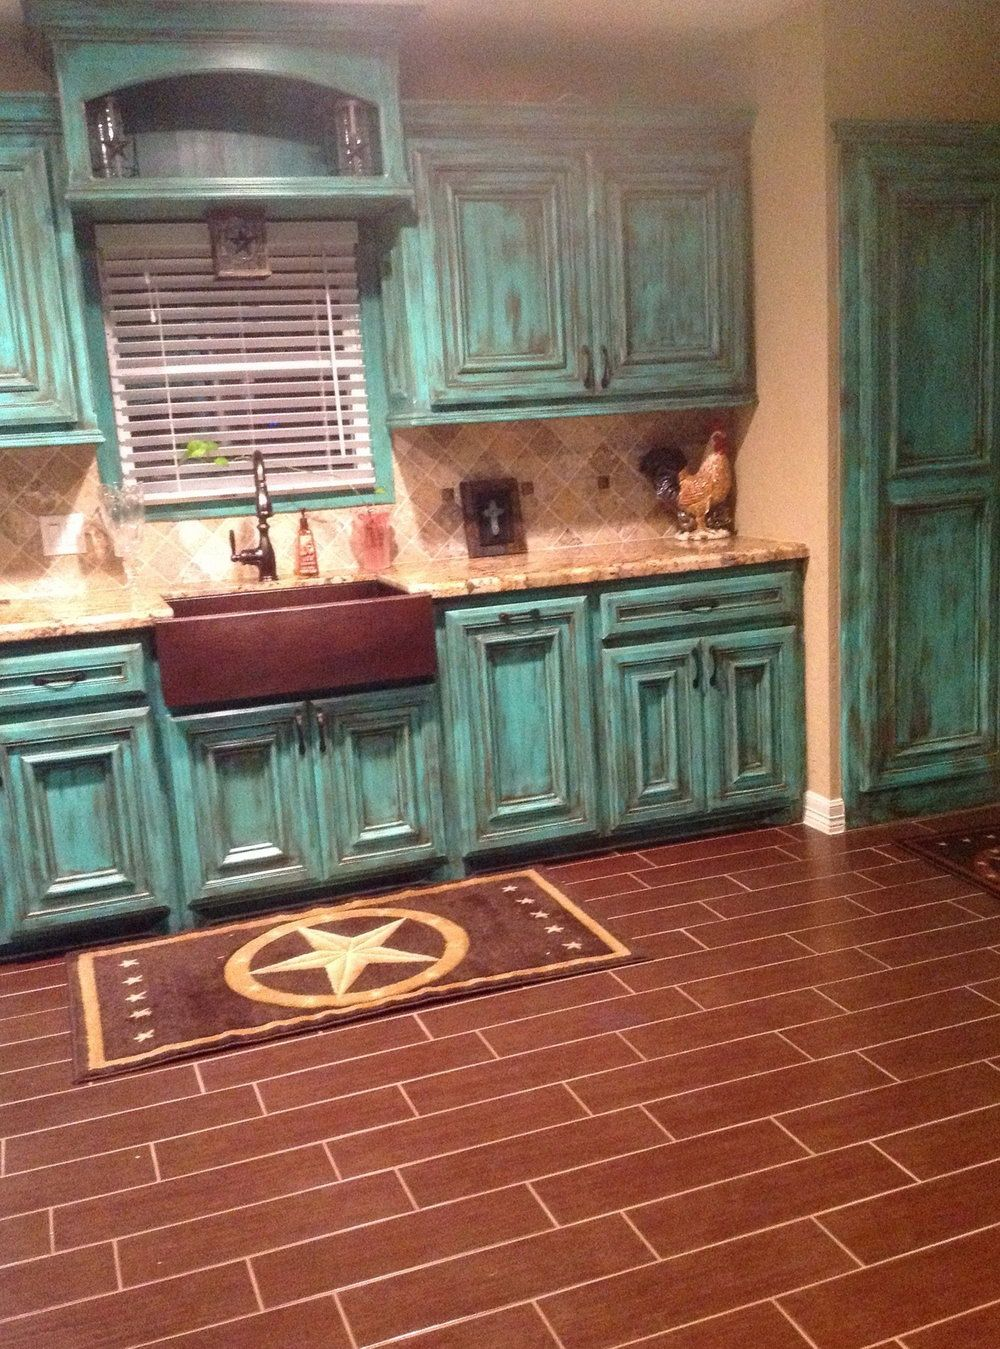 Rustic Teal Kitchen Cabinets Home Decor Turquoise Cabinets Rustic Kitchen Cabinets